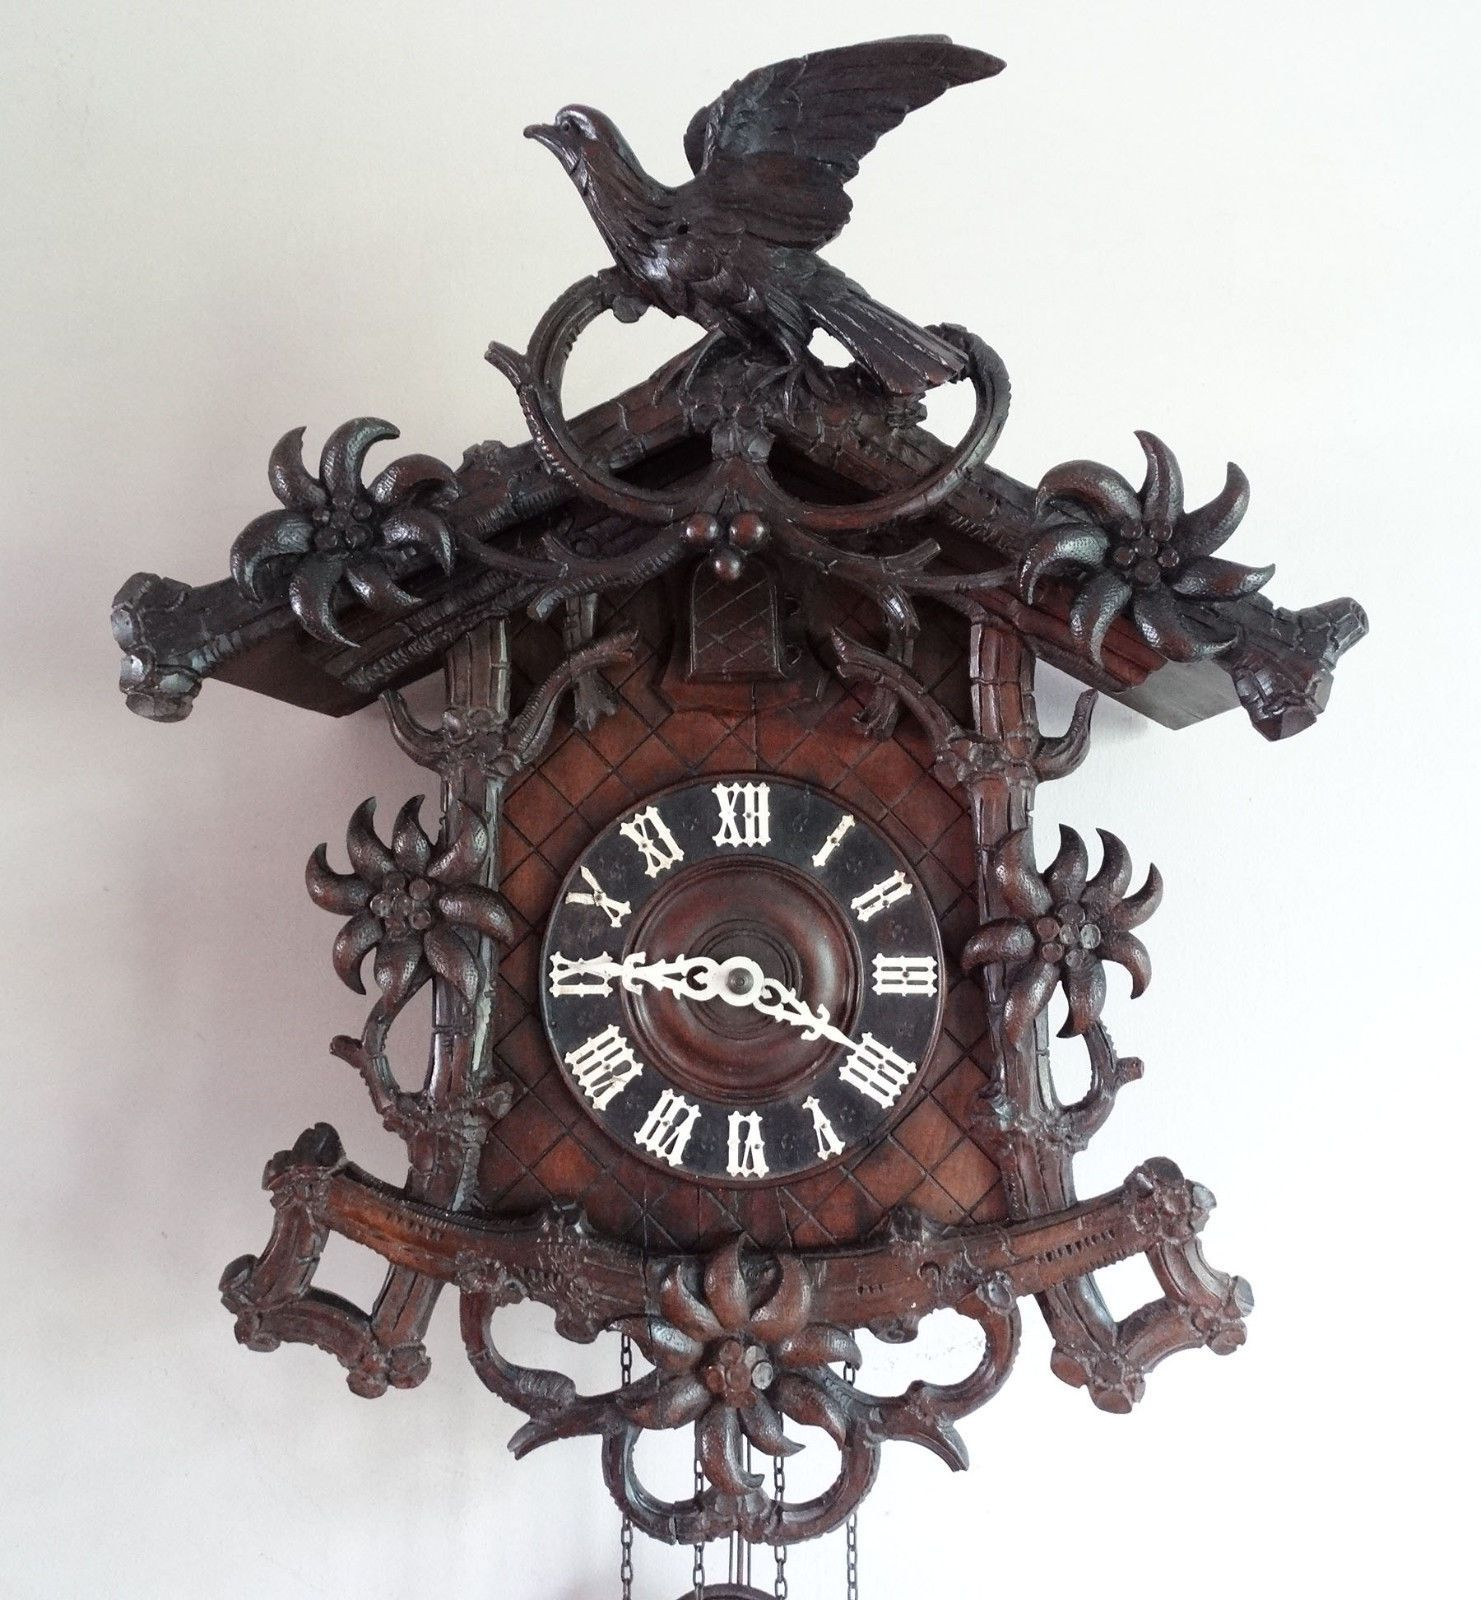 Antique cuckoo wall clock weight driven black forest germany antique cuckoo wall clock weight driven black forest germany chiming 30 hour cad 162 amipublicfo Images